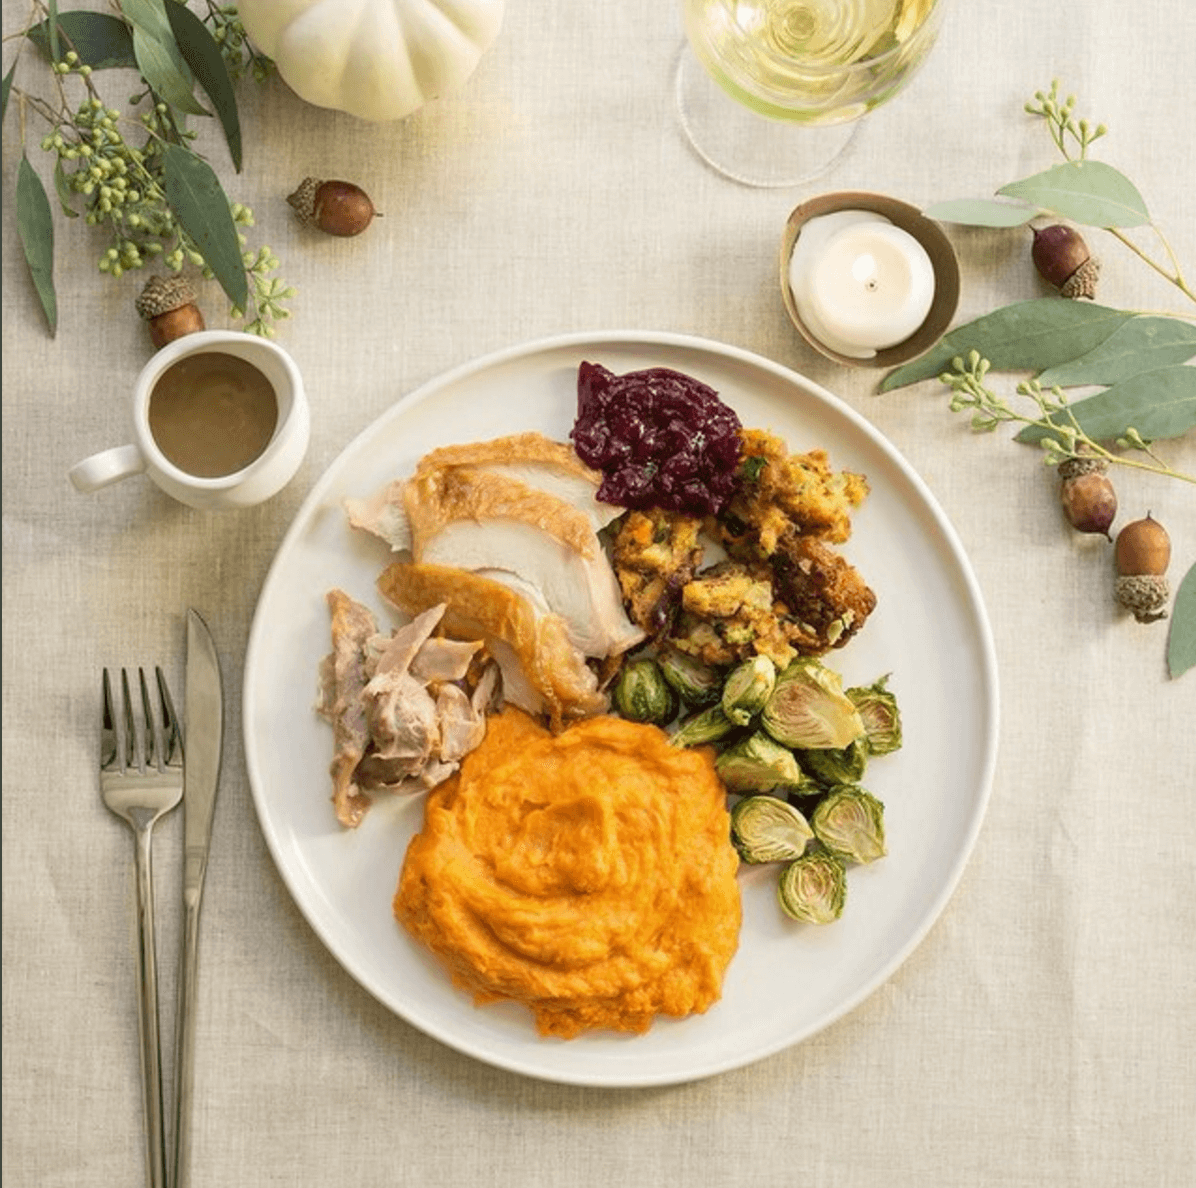 Shop Specialties Munchery Home Food Delivery Veggies